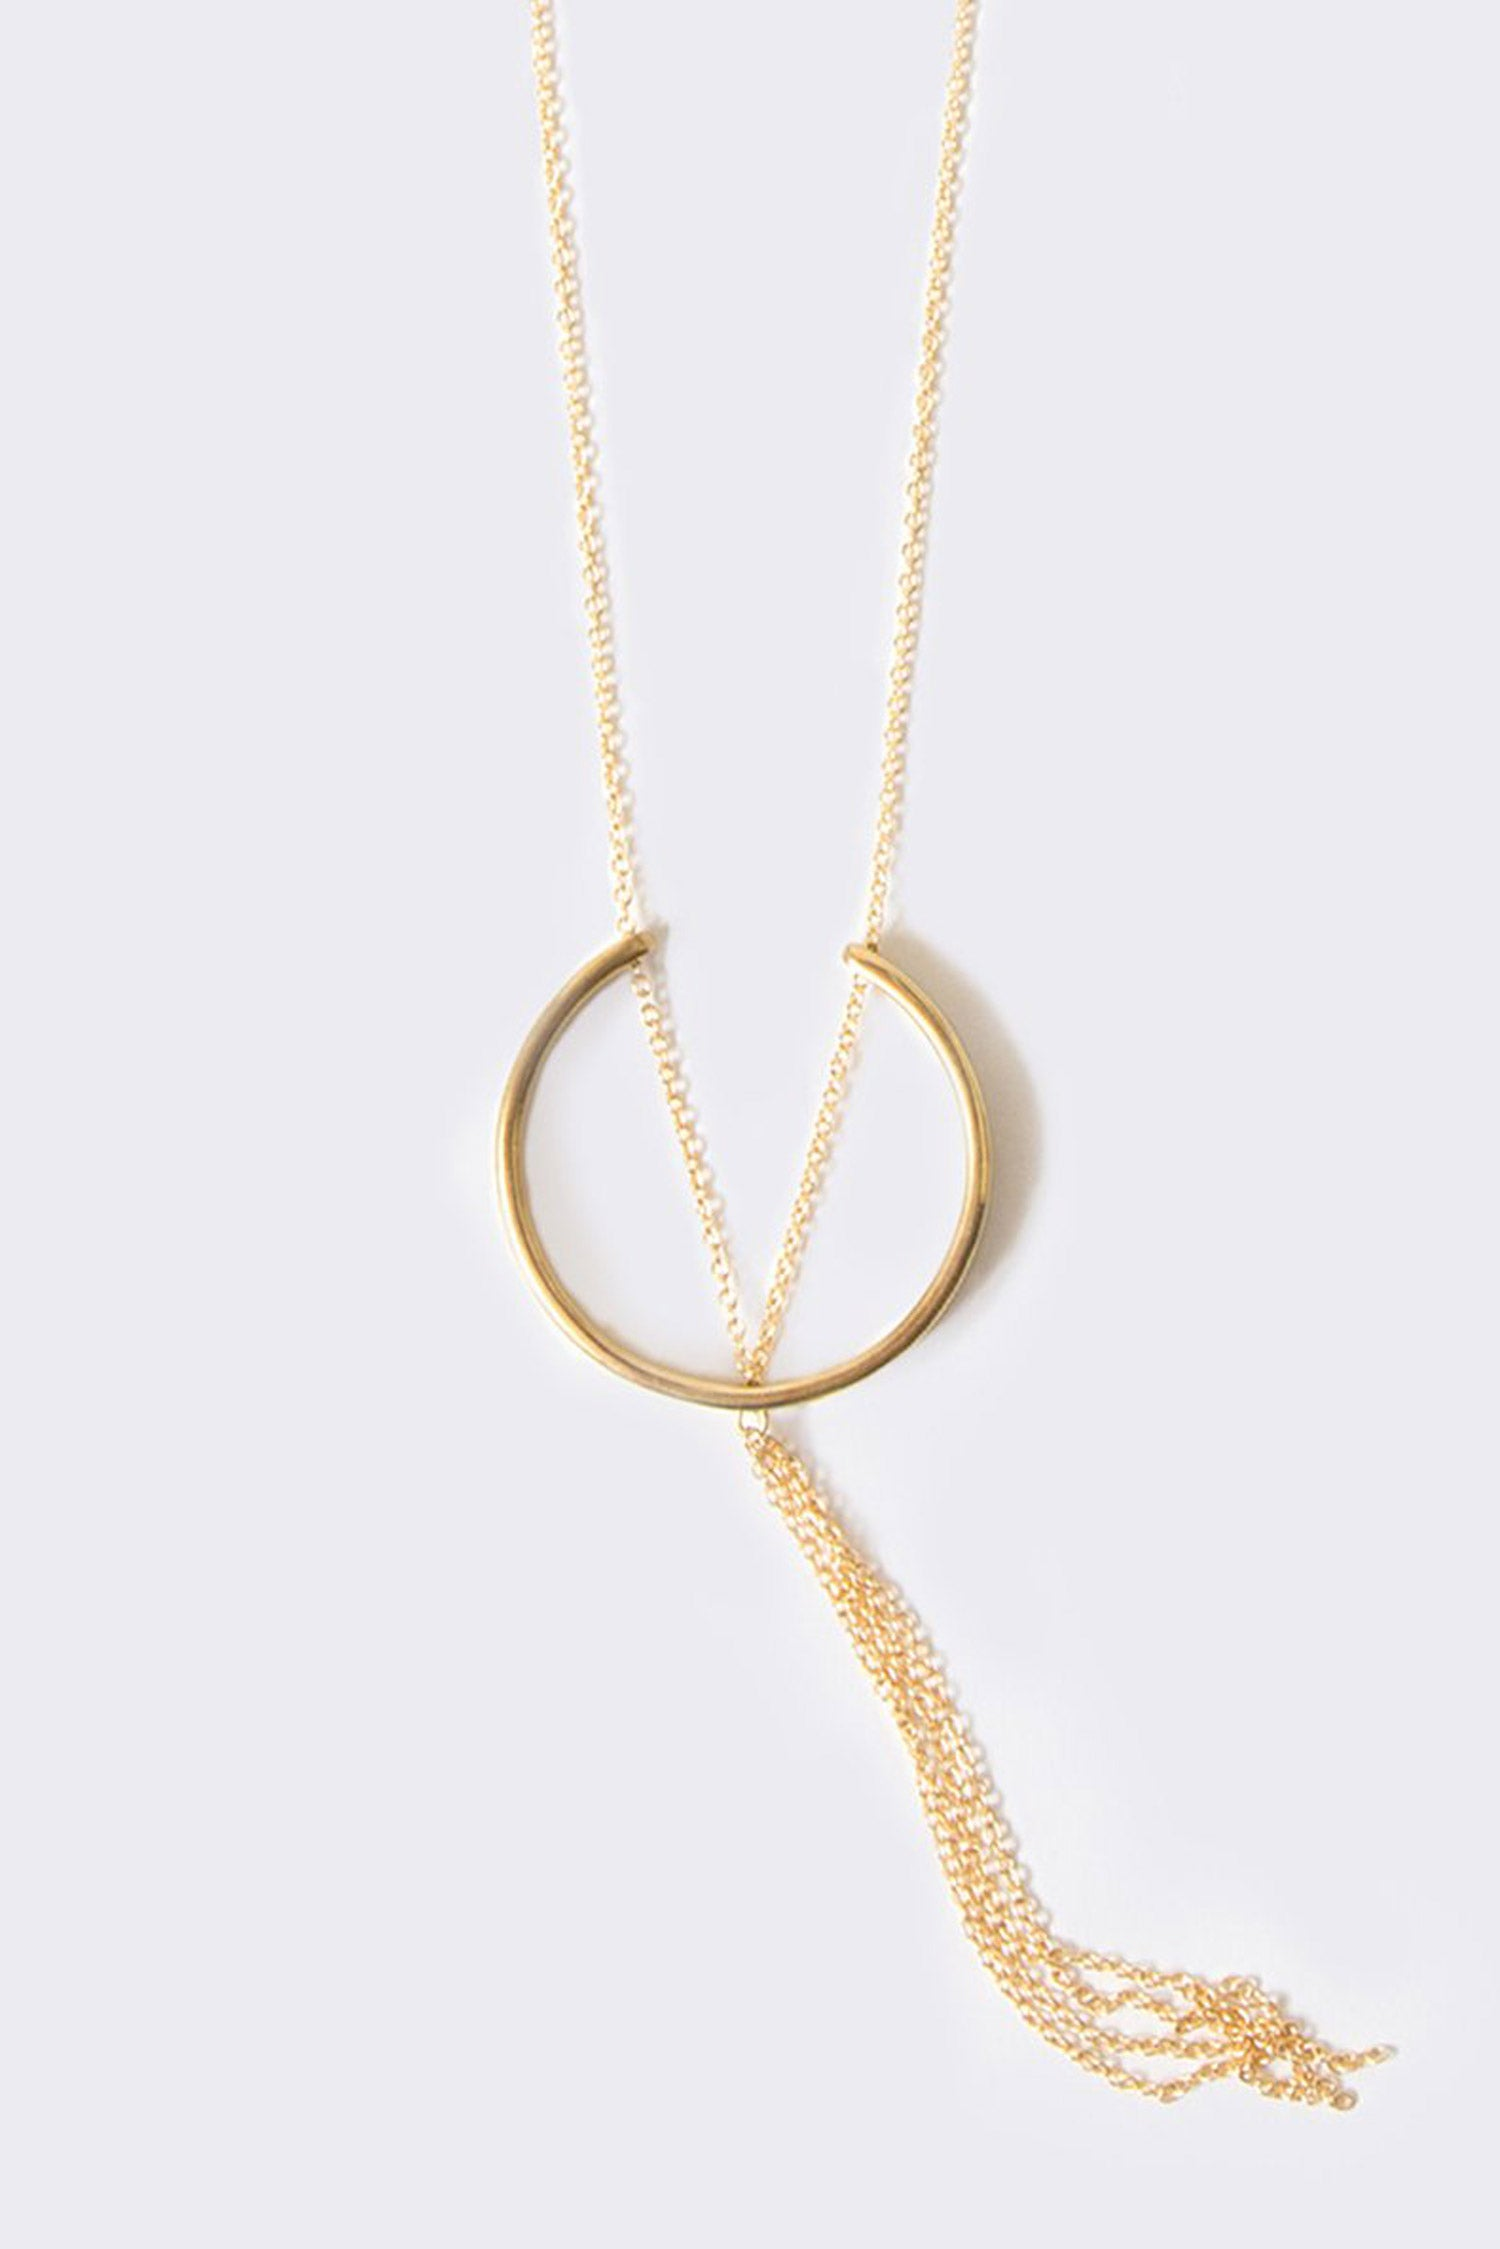 Hewa Pendant Necklace - Ethical Jewelry by SOKO at Indigenous